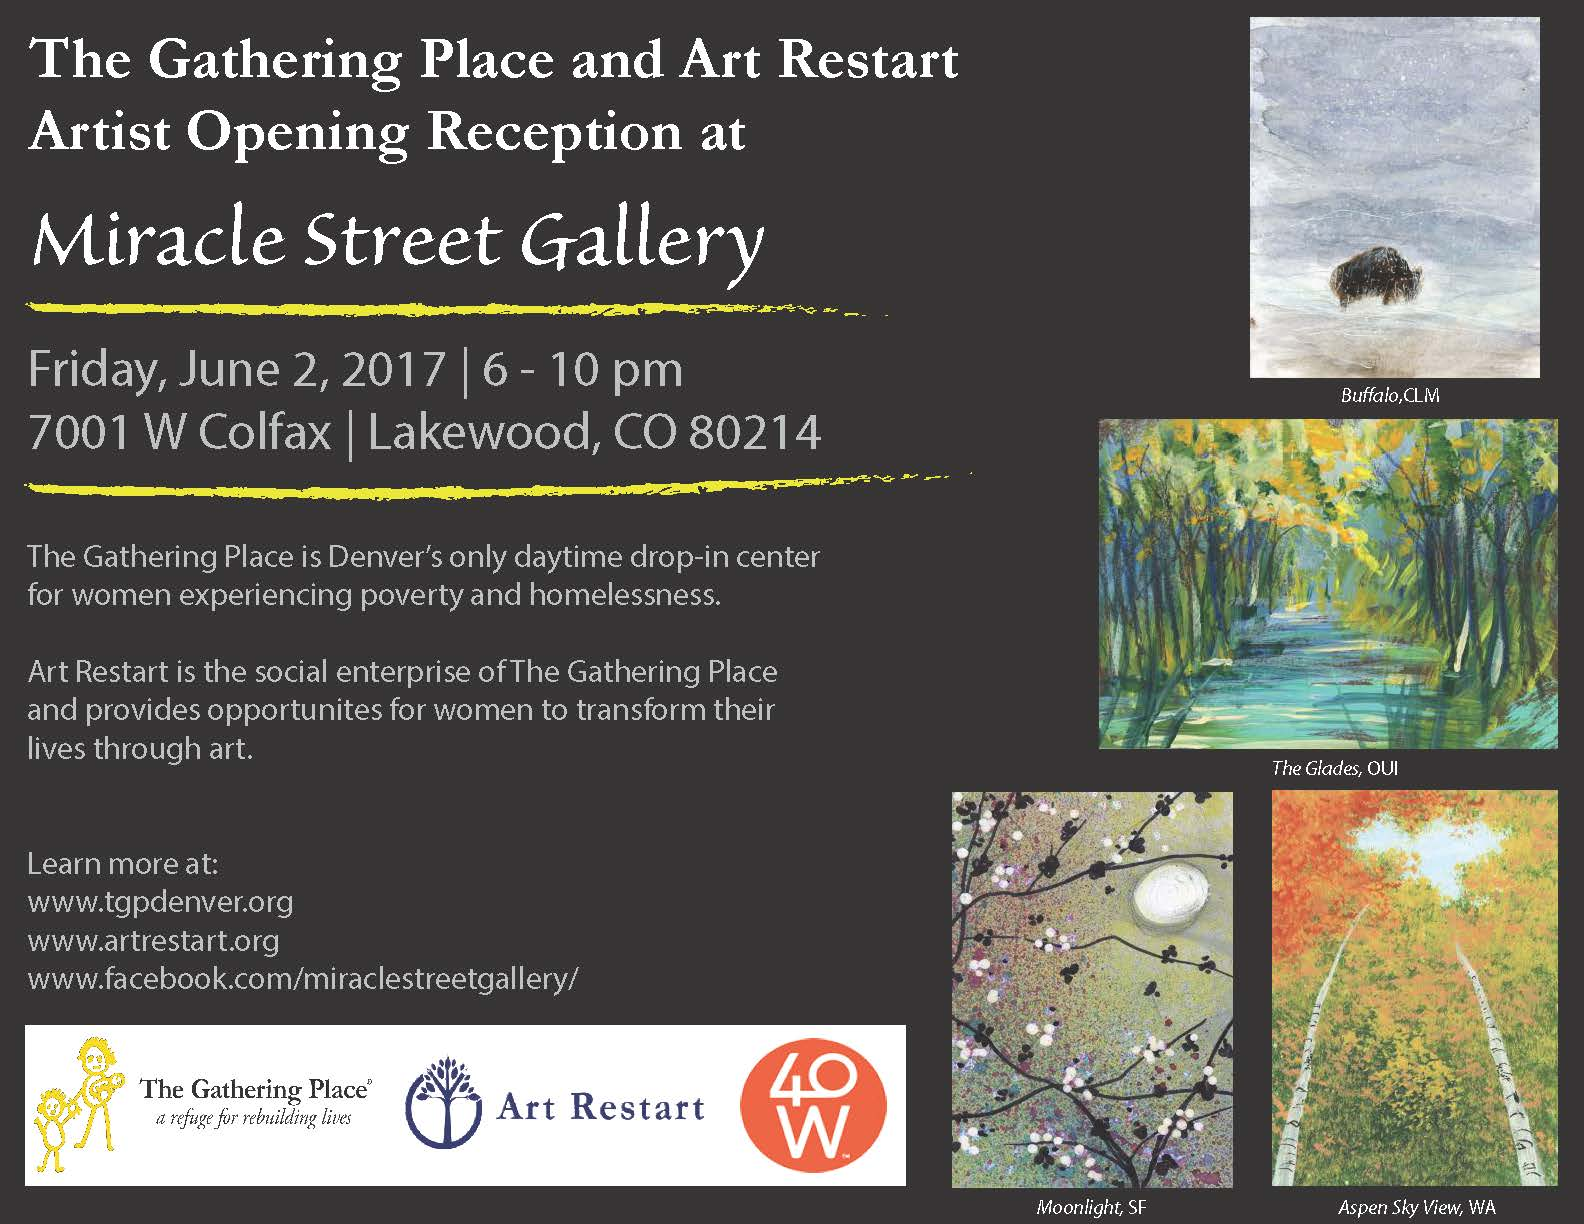 Artist Opening Reception at Miracle Street Gallery, June 2